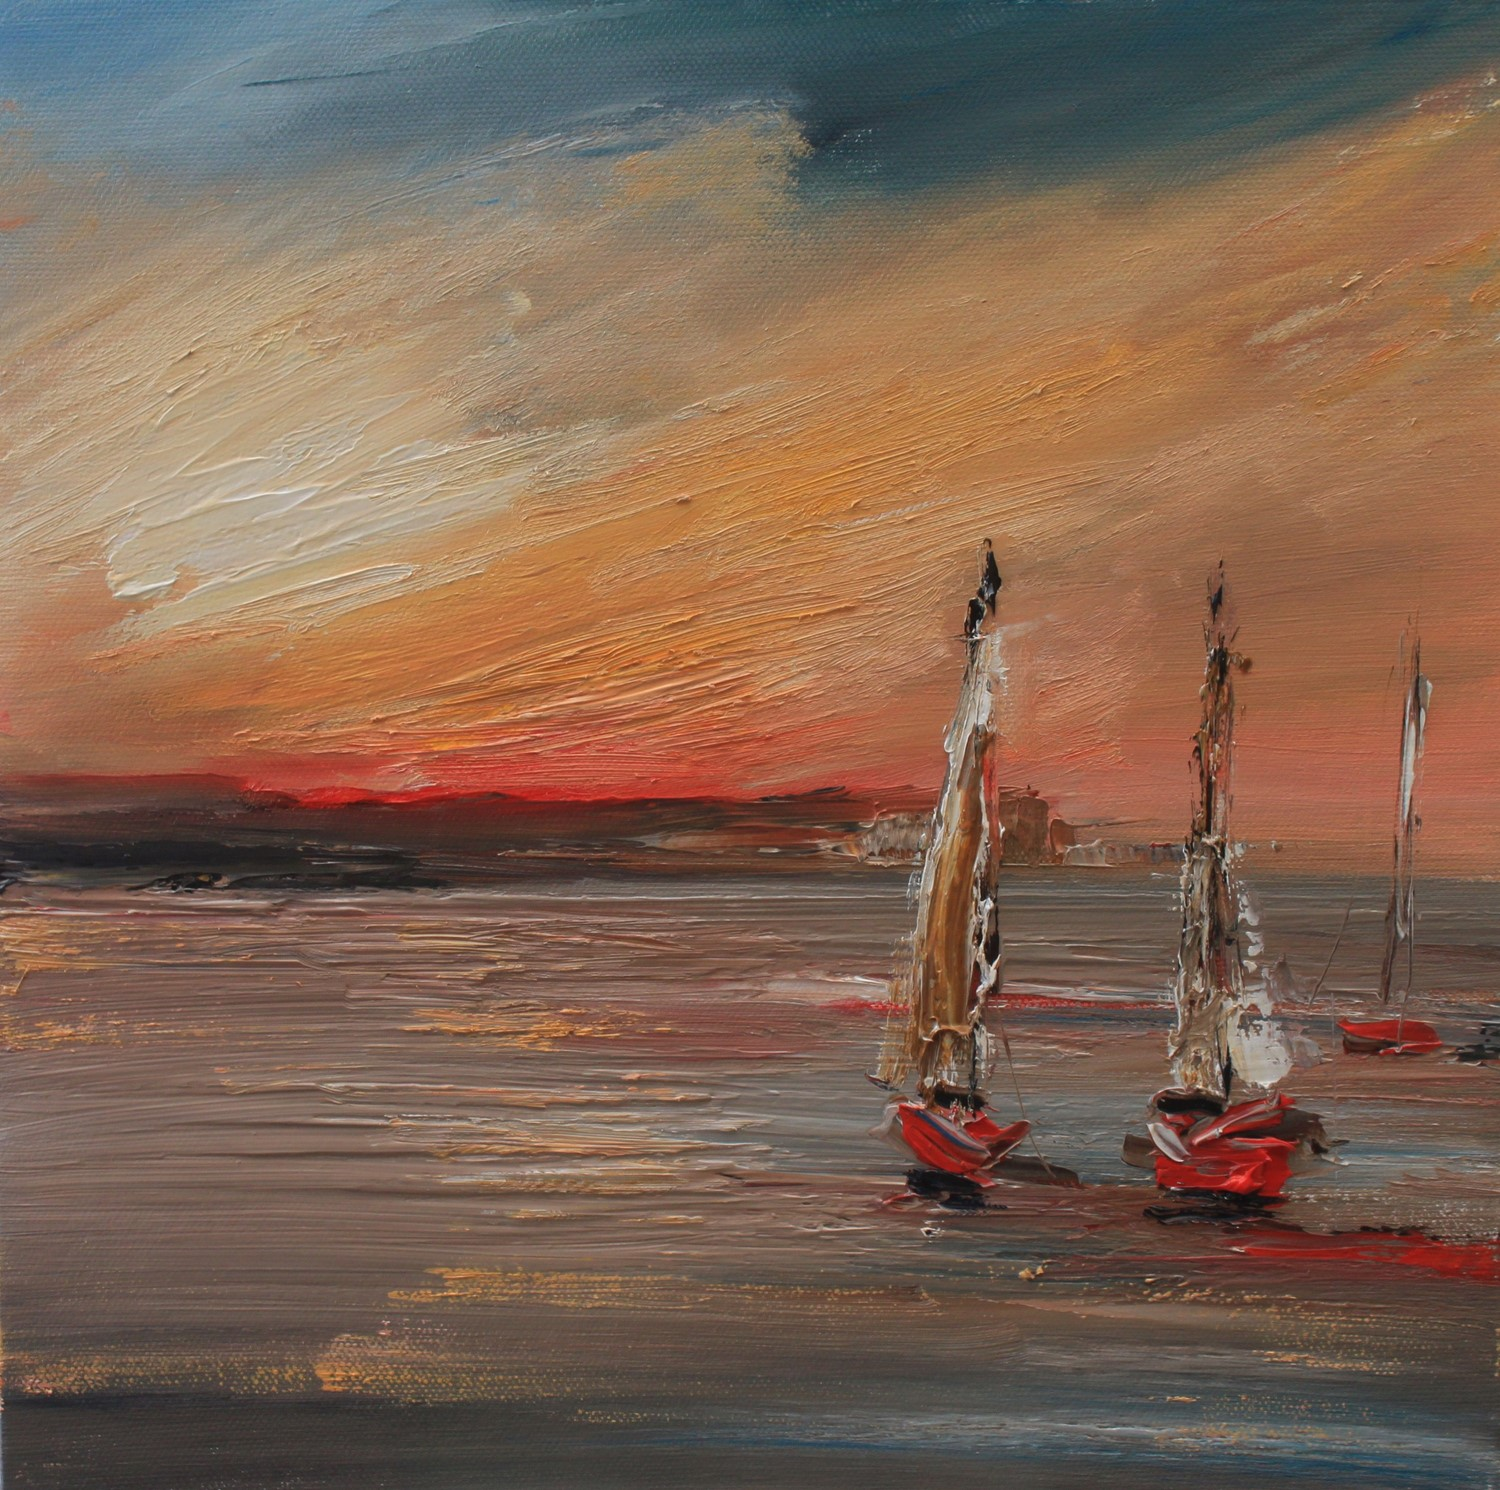 'Sails at Sunset' by artist Rosanne Barr